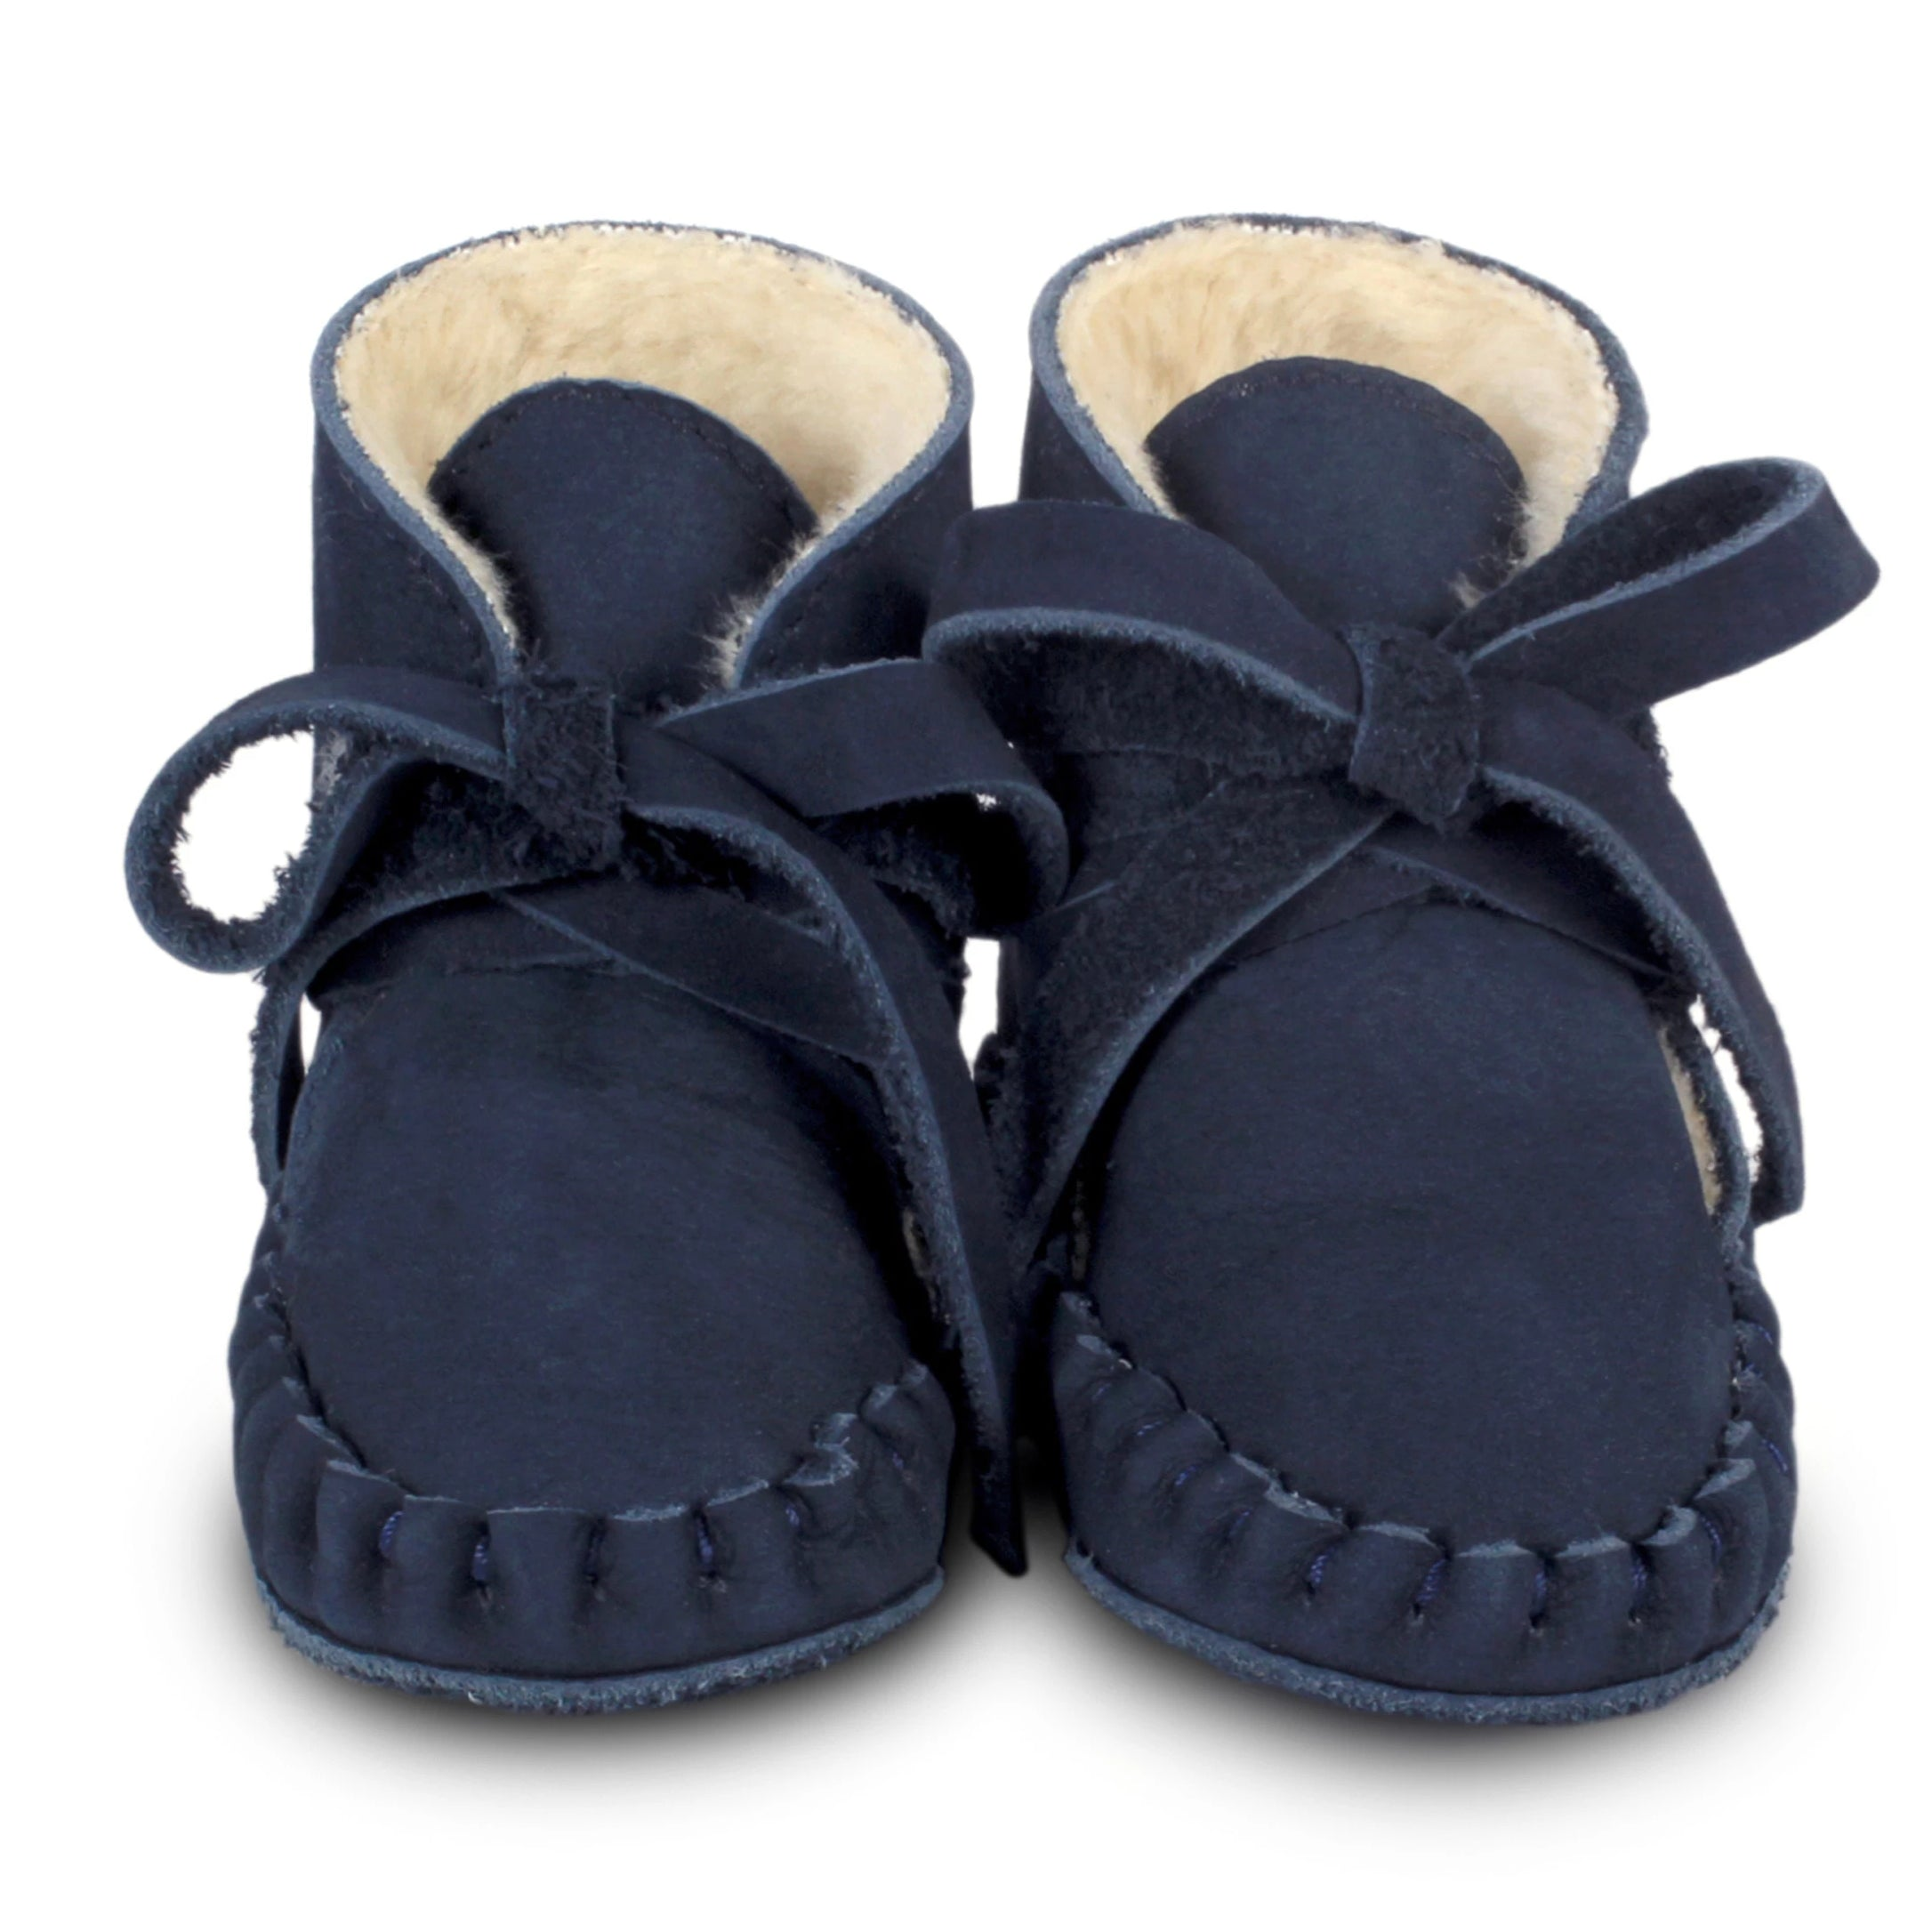 Donsje Lined Baby Boots in Navy. Perfect addition to your BYOB (Build Your Own Basket)